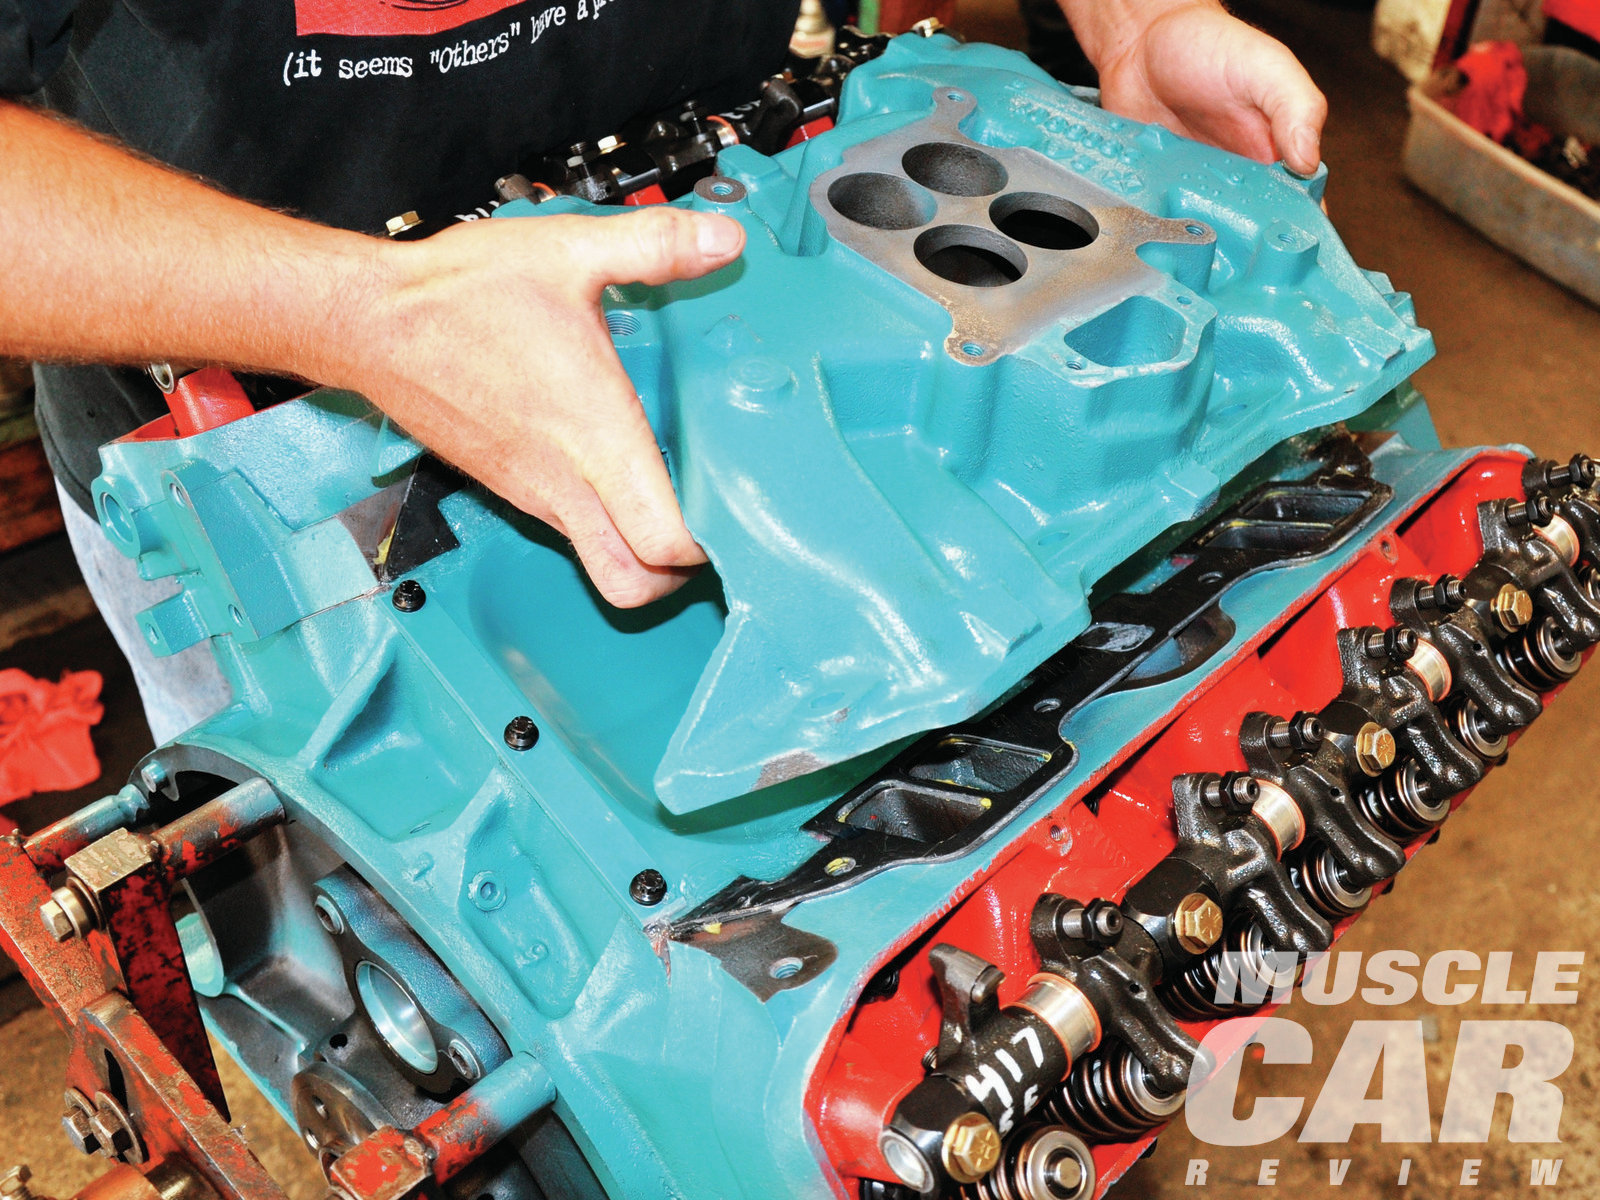 16 With gaskets, intake, and bolt holes lined up, the right amount of gasket sealer was applied and the intake installed.